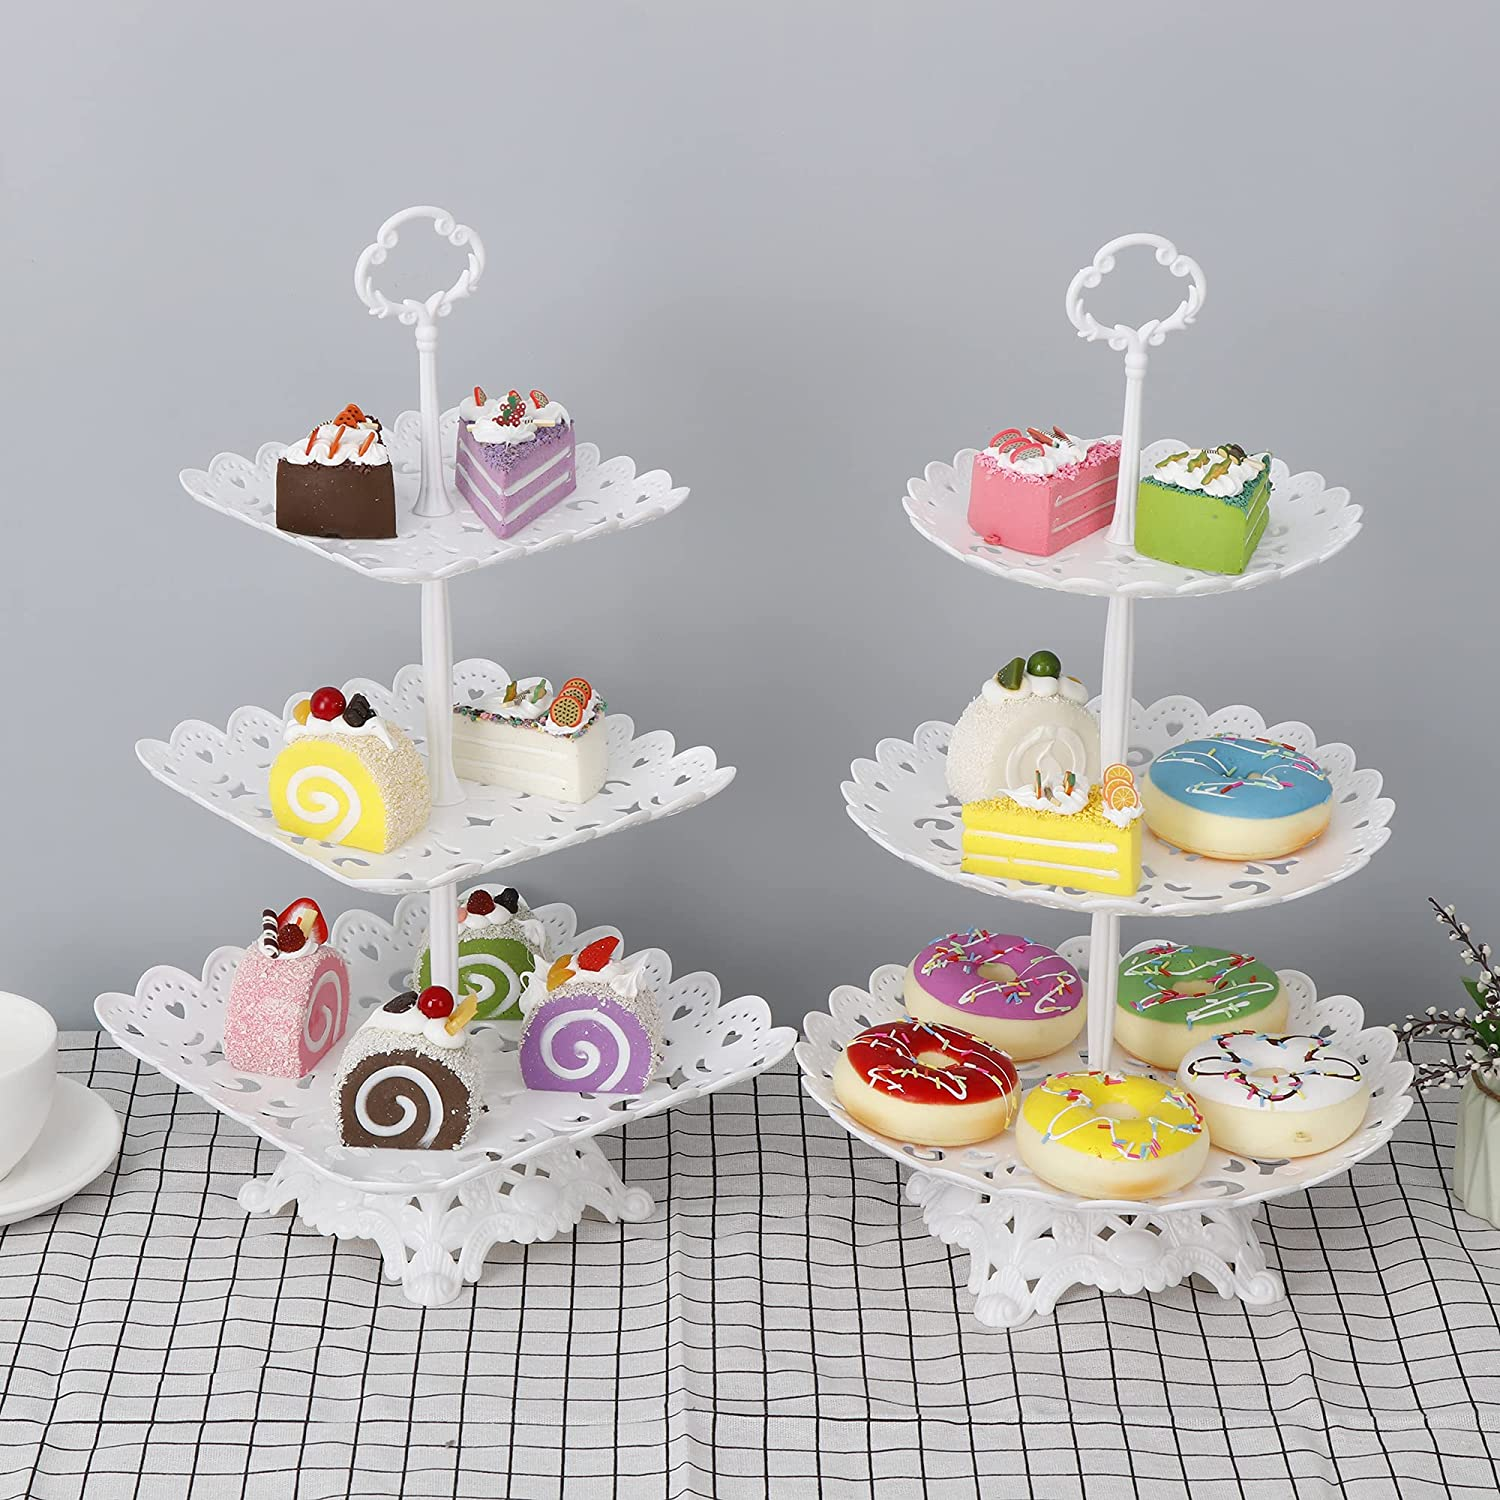 Set of 2 White 3-Tier Cupcake Dessert Stand with Base, Fruits Desserts Candy Sweets Buffet Display Plate Decor Serving Platter for Tea Party Wedding Birthday Baby Shower Celebration Home Decoration